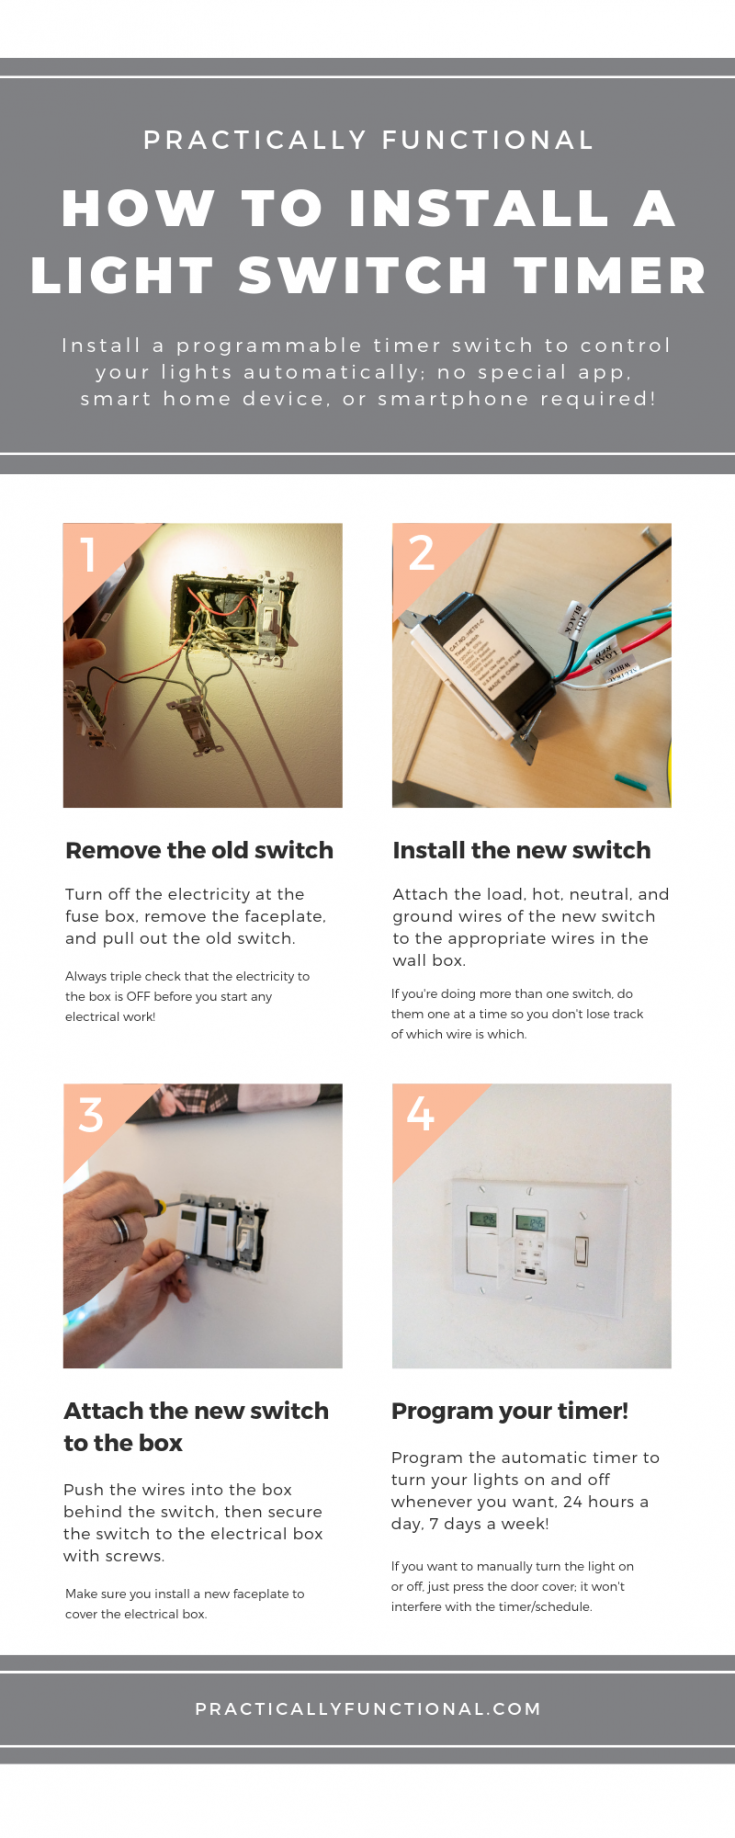 Learn how to replace a regular light switch will a programmable timer switch so you can control your lights automatically! No special app, smart home device, or smartphone required! #simplediy #automaticlights